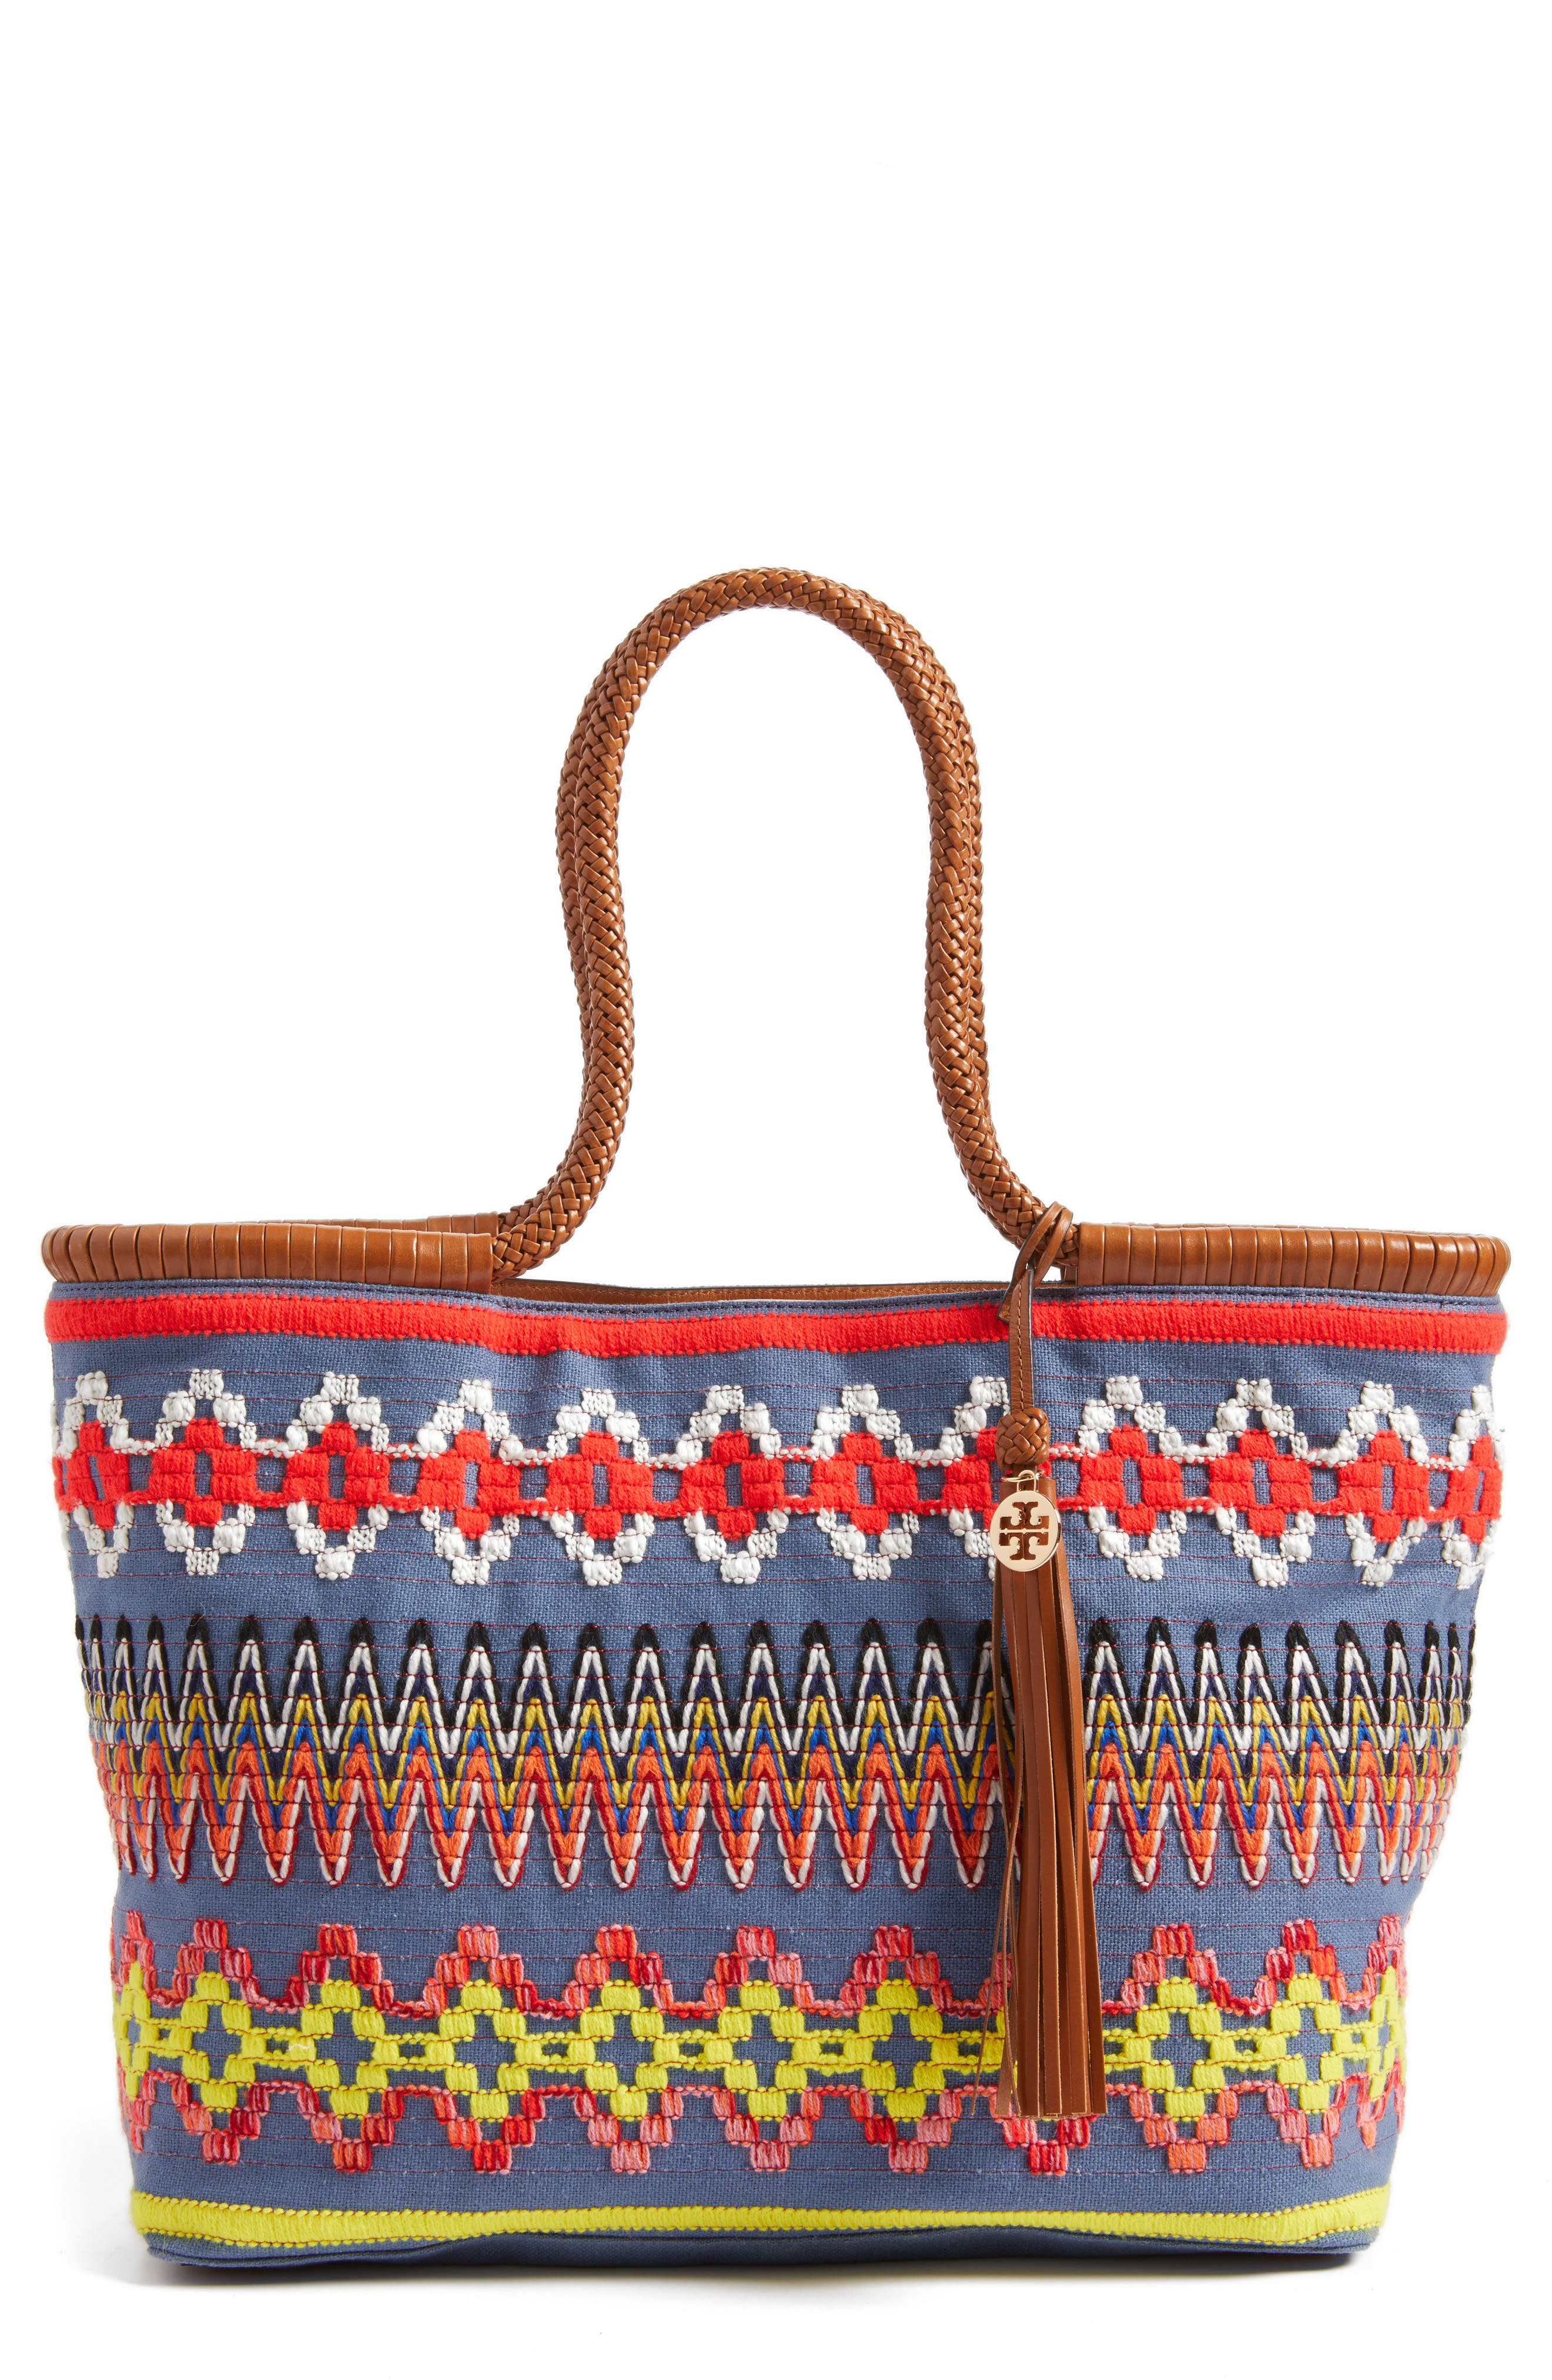 Tory Burch Embroidered Tote